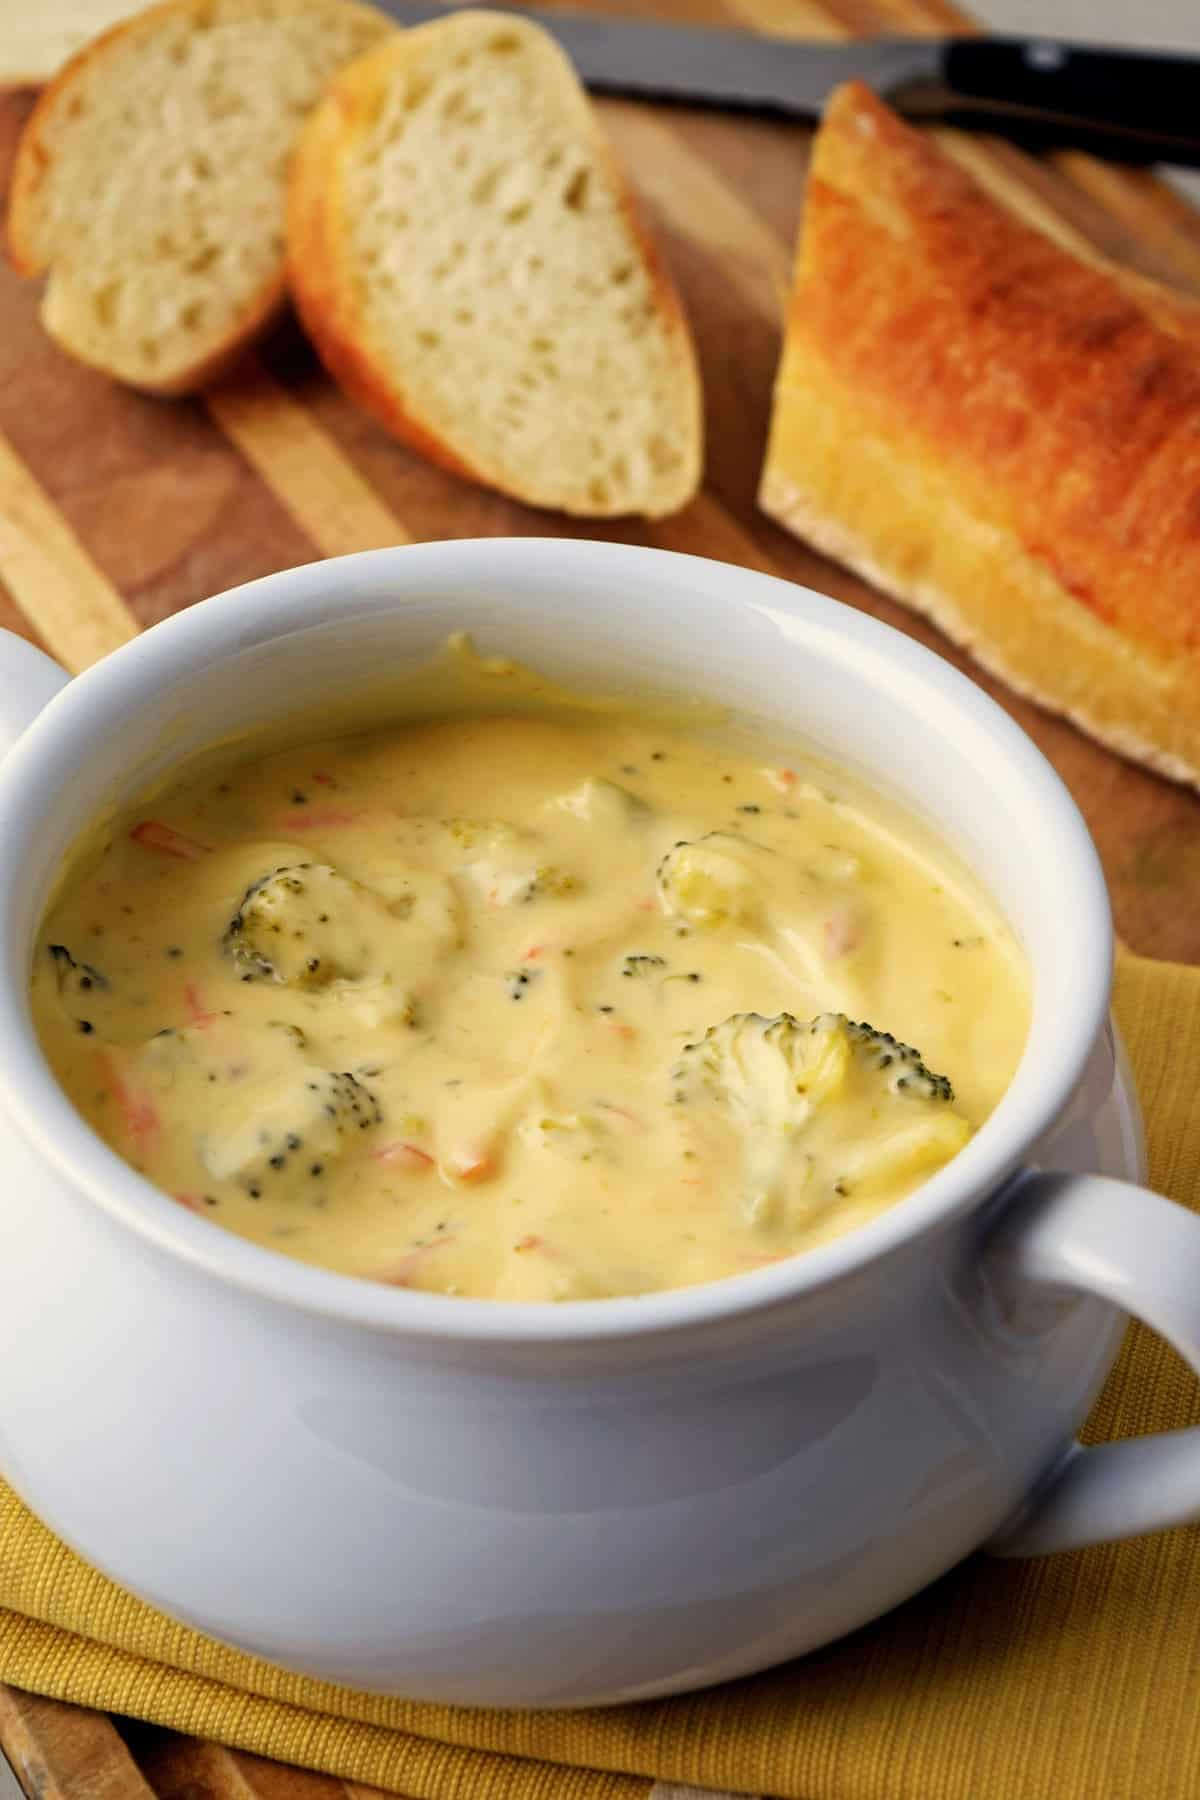 This soup is extremely simple to make but the end result is just awesome. I use my jug blender to really get the broccoli mixture very smooth then once combined with the milk, I put it all back in the blender and give it a good minute to get it silky smooth. I serve it with a swirl of cream and Total Time: 35 mins.